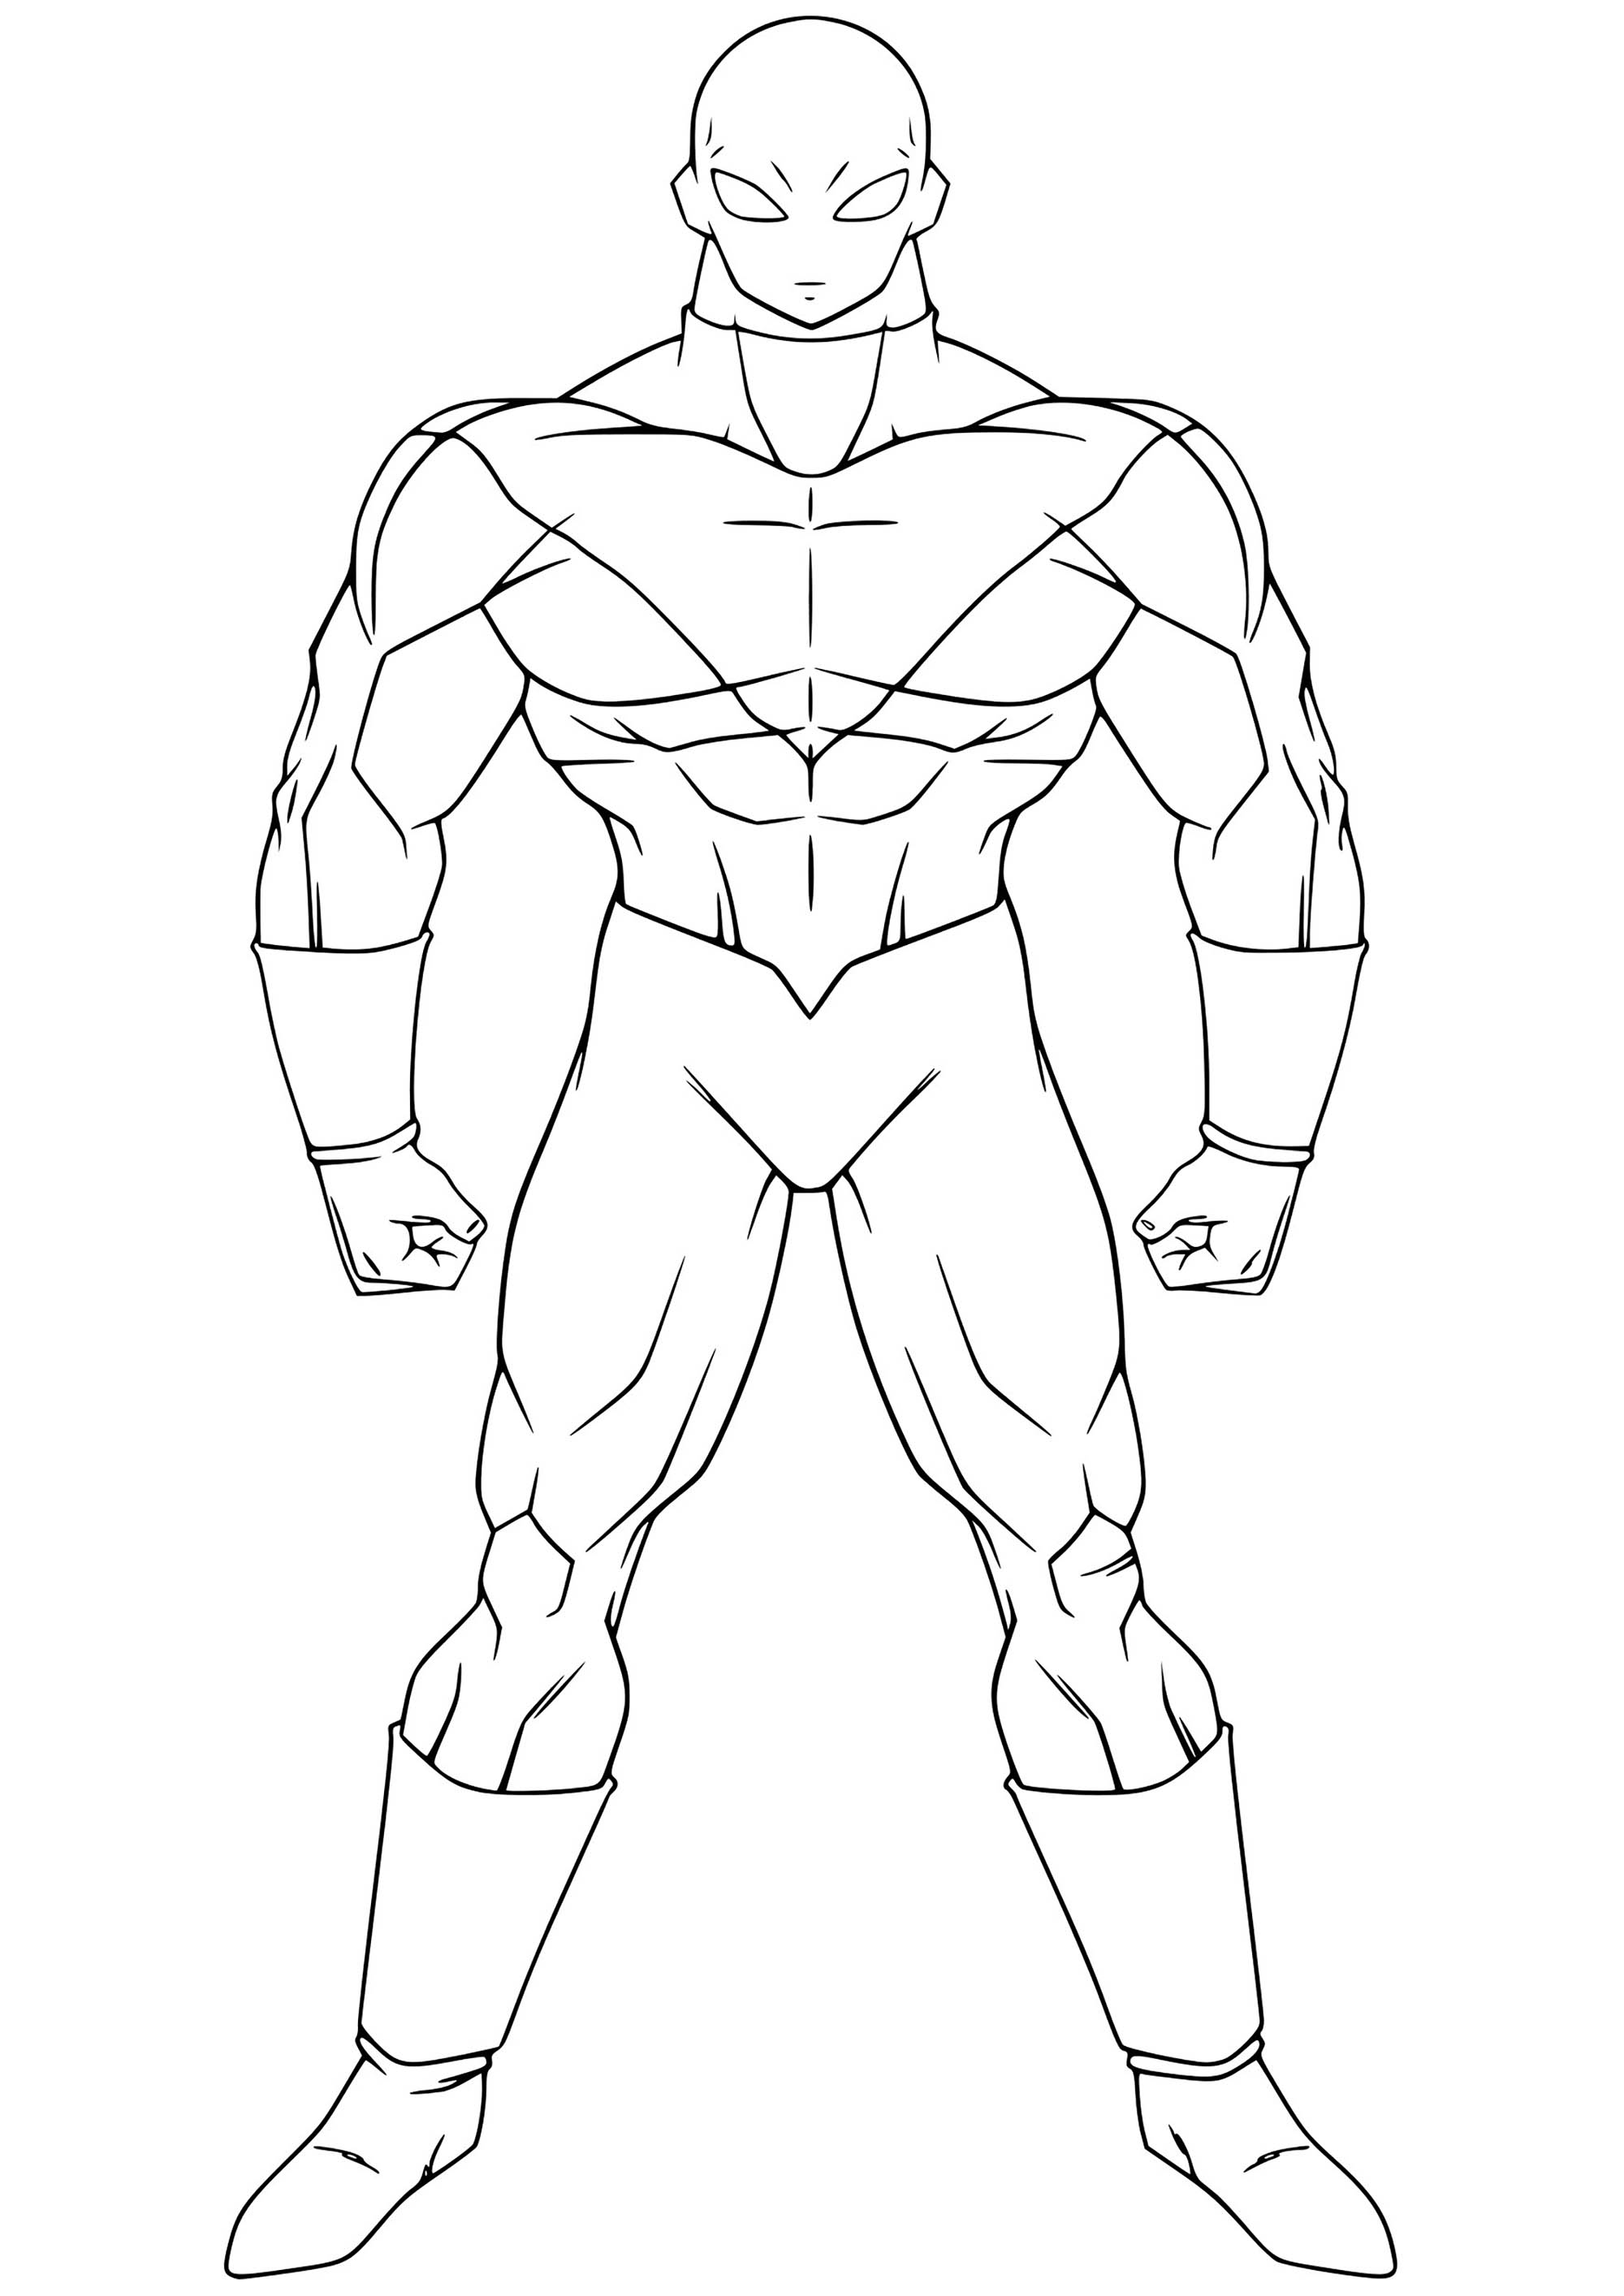 Coloring and Drawing: Goku Ui Coloring Pages